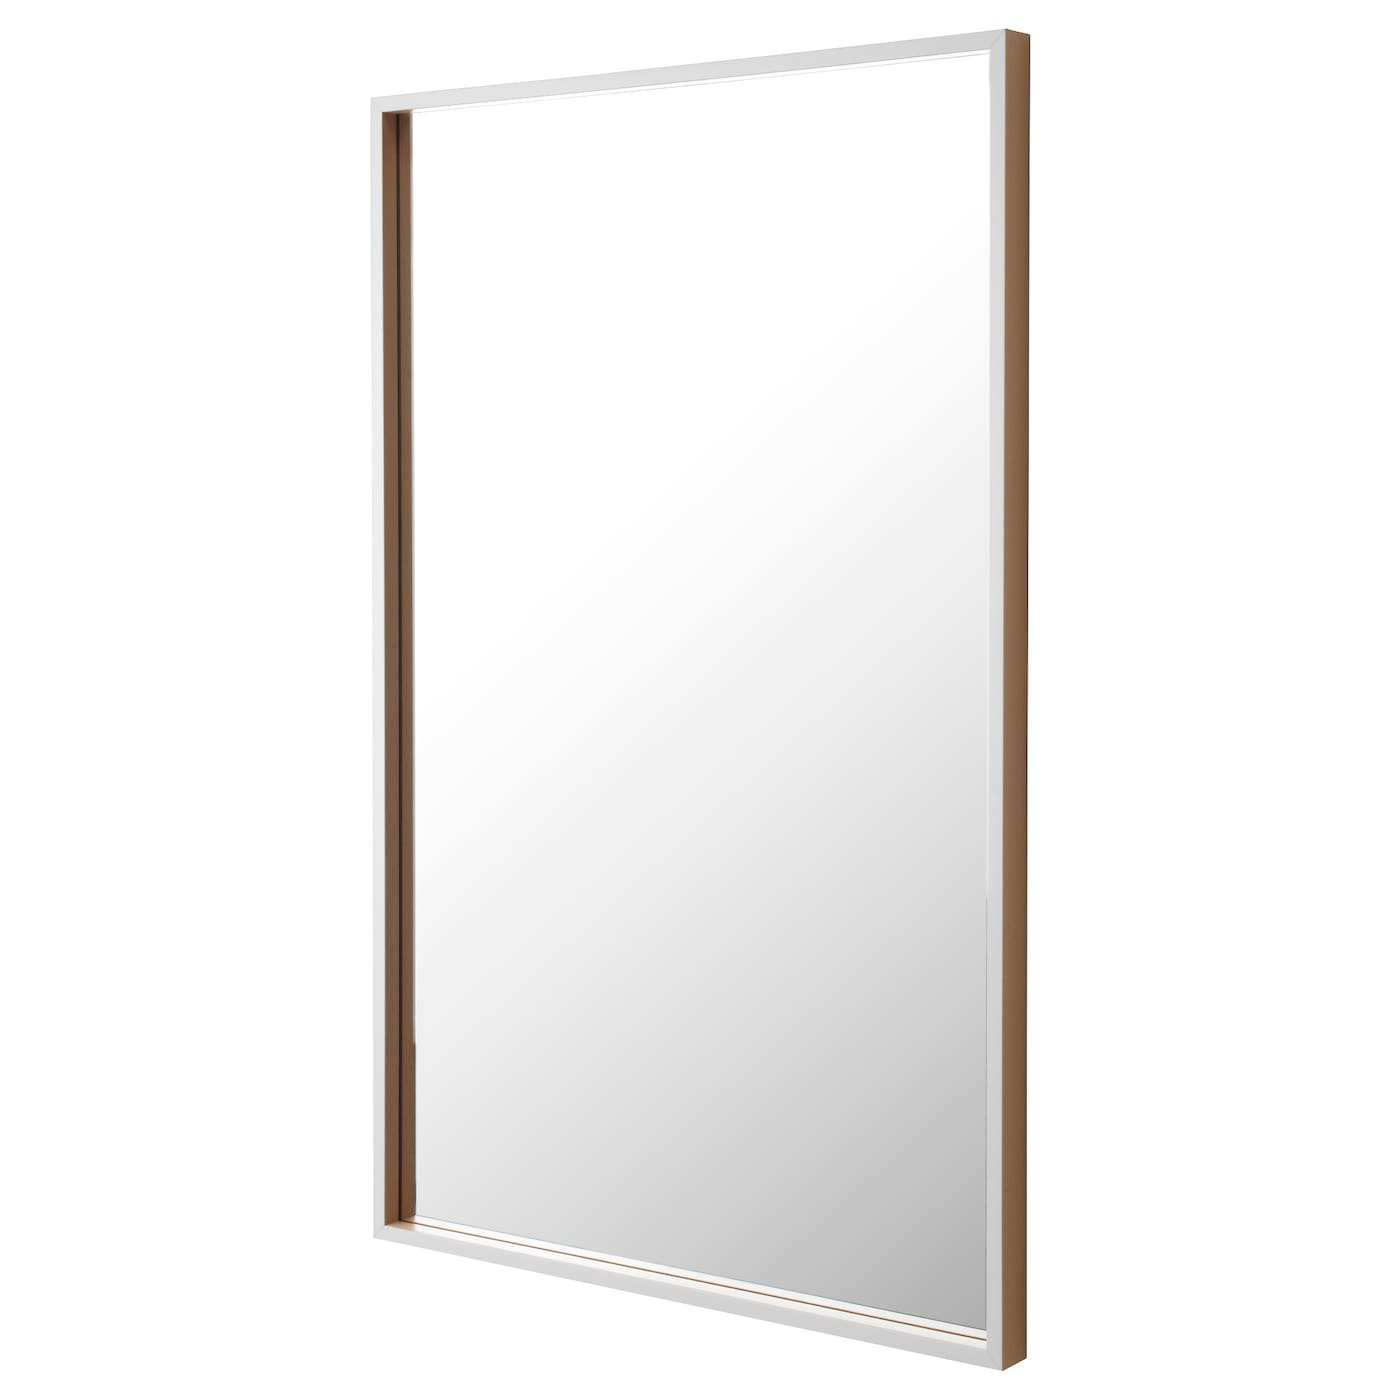 Wall mirrors wall mirrors with shelves ikea for Miroir 50 x 100